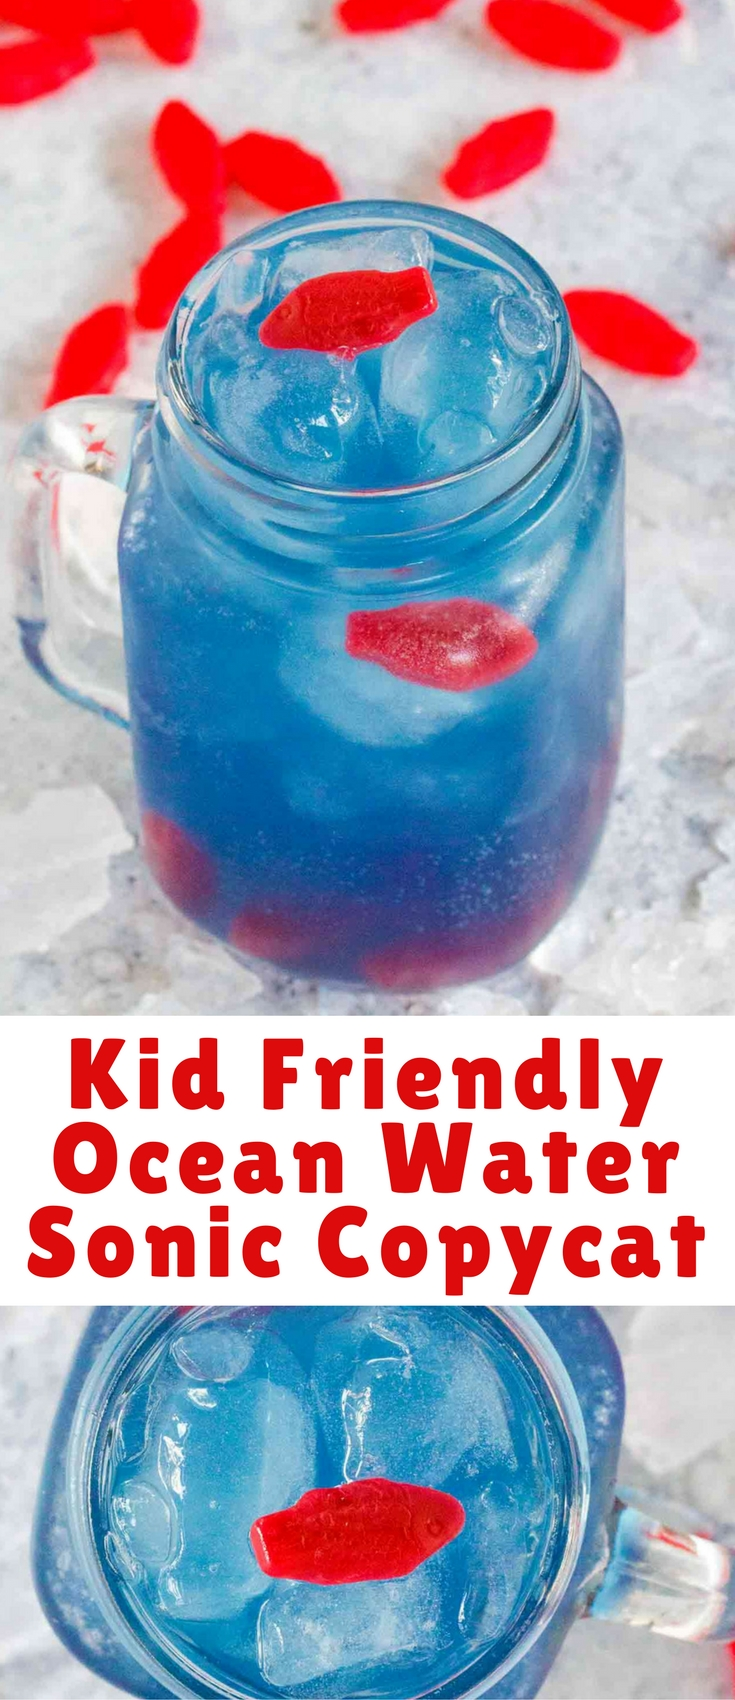 Ocean Water is colorful, sweet, tangy and refreshing. This kid friendly version has been inspired by the famous Sonic Ocean Water.